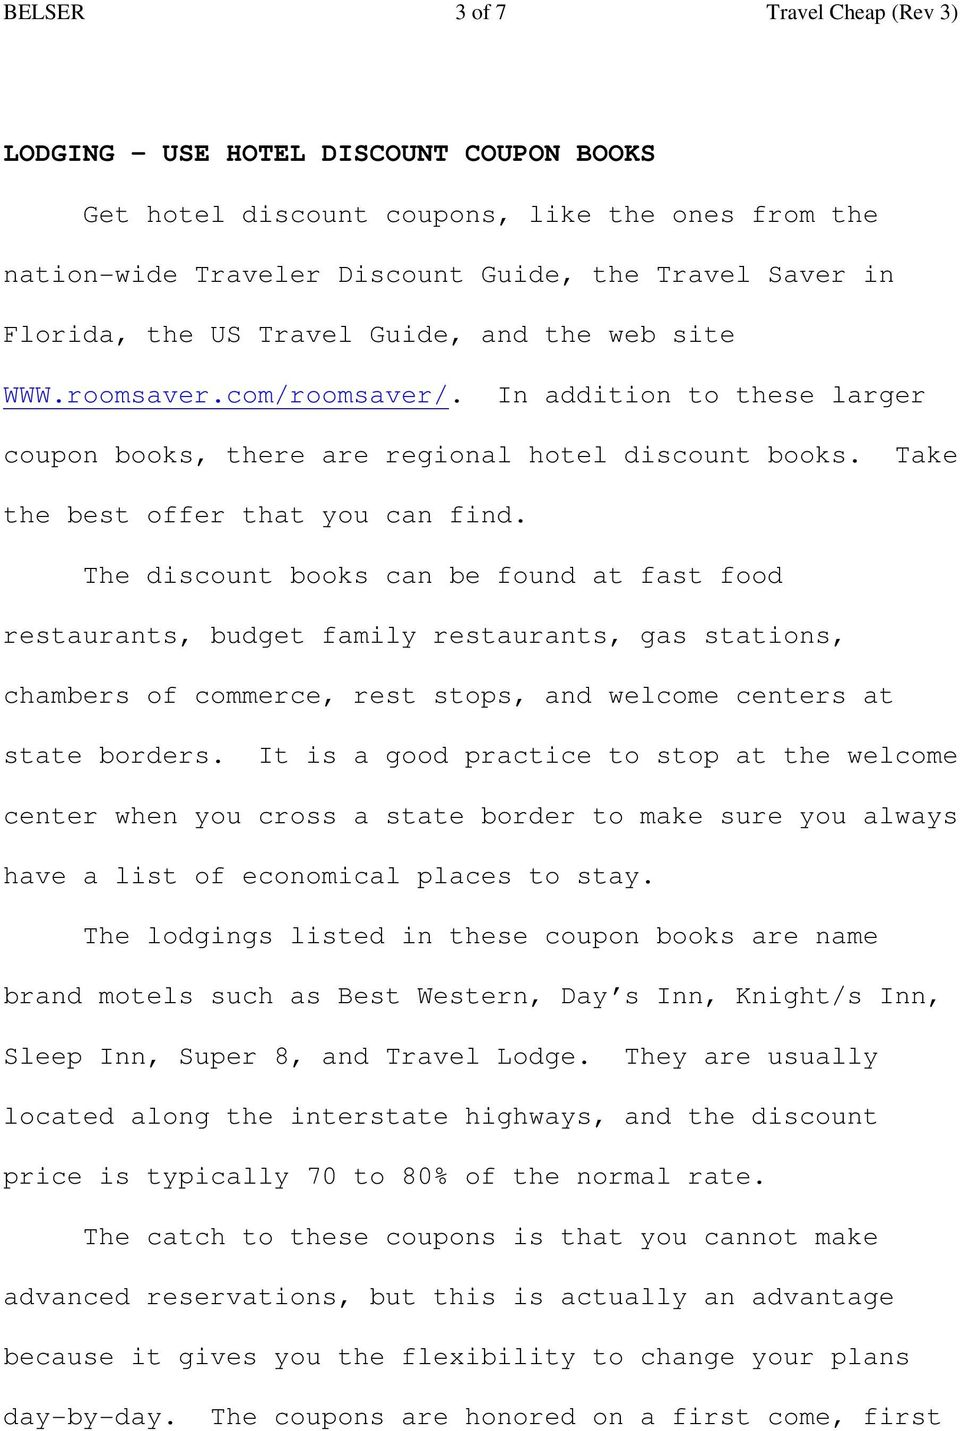 The discount books can be found at fast food restaurants, budget family restaurants, gas stations, chambers of commerce, rest stops, and welcome centers at state borders.